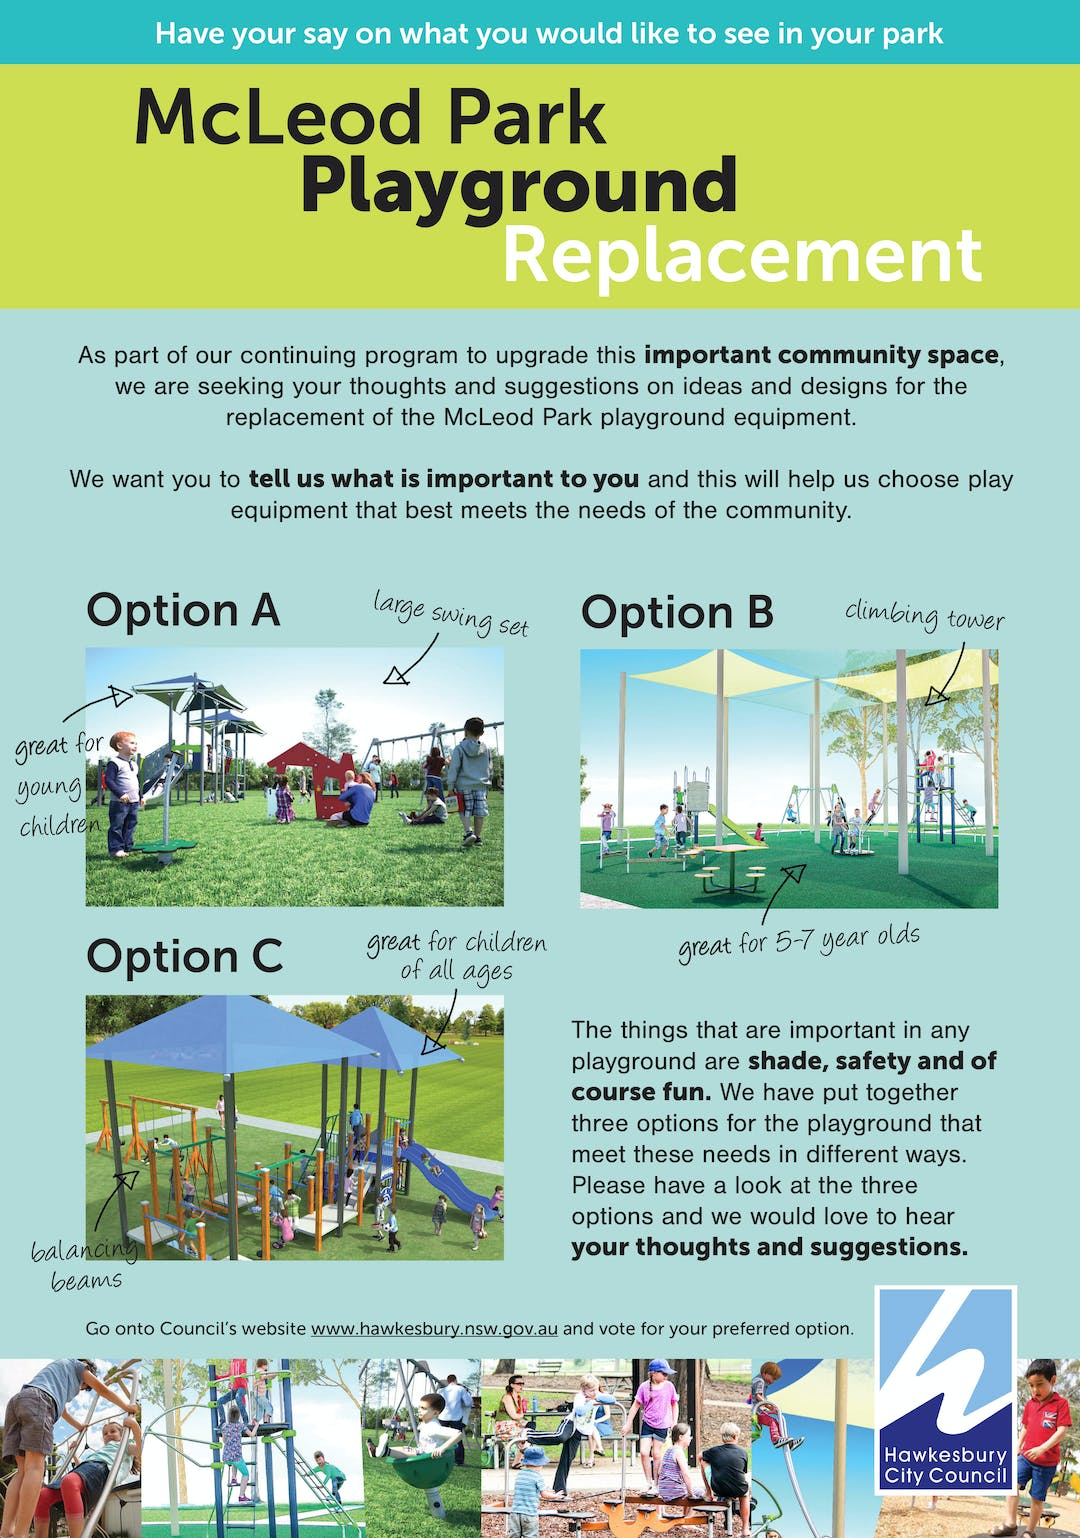 As part of our continuing program to upgrade this important community space, we are seeking your thoughts and suggestions on ideas and designs for the replacement of the McLeod Park playground equipment.